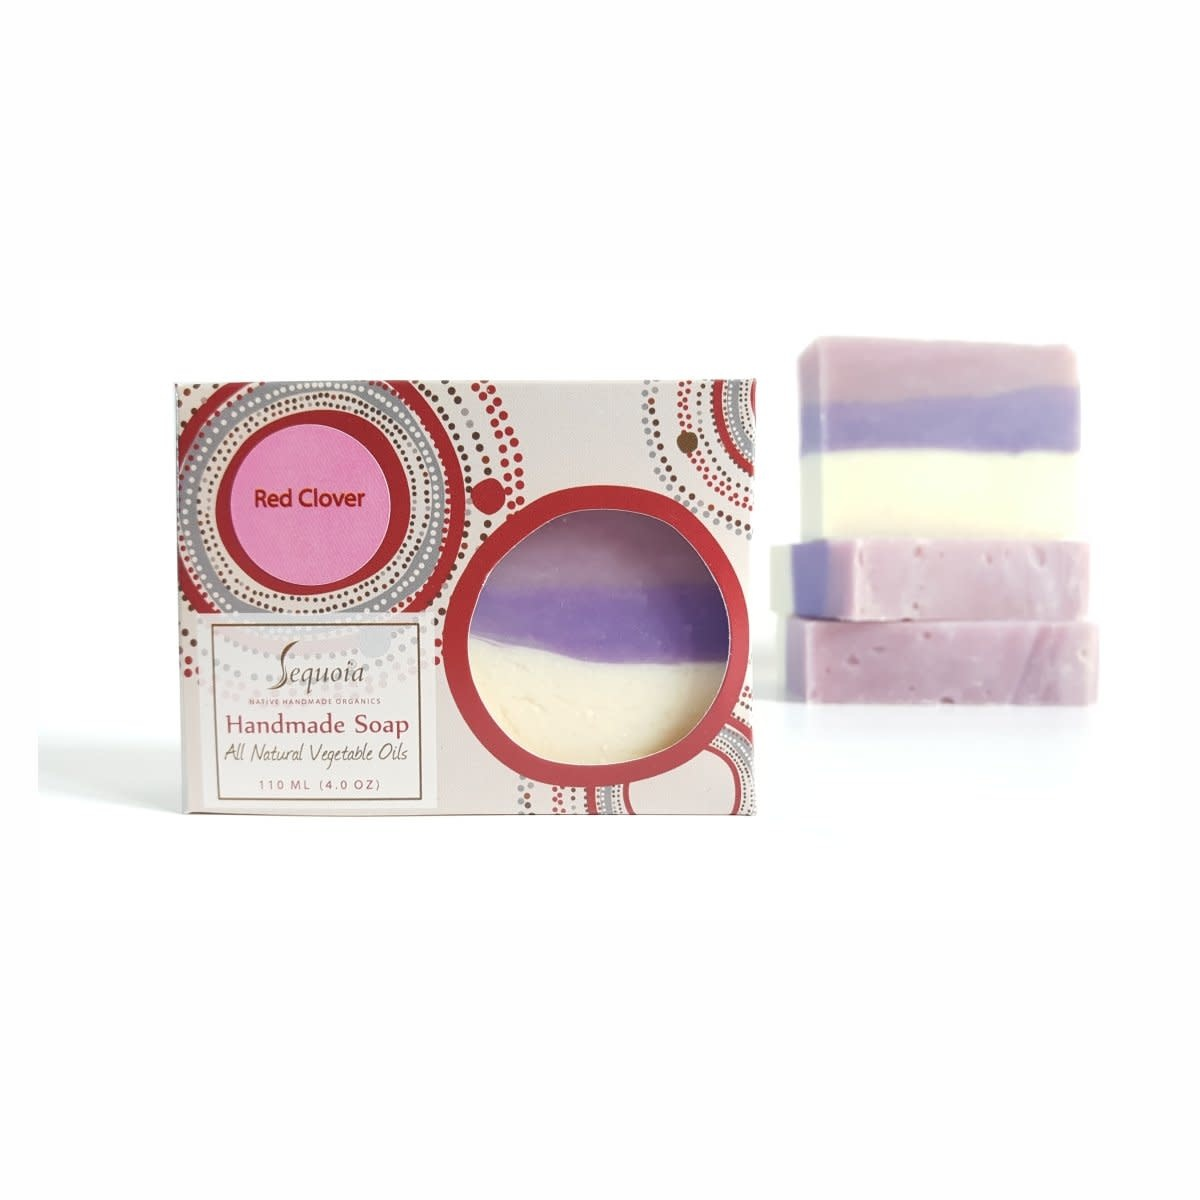 Sequoia Red clover 4oz soap-1